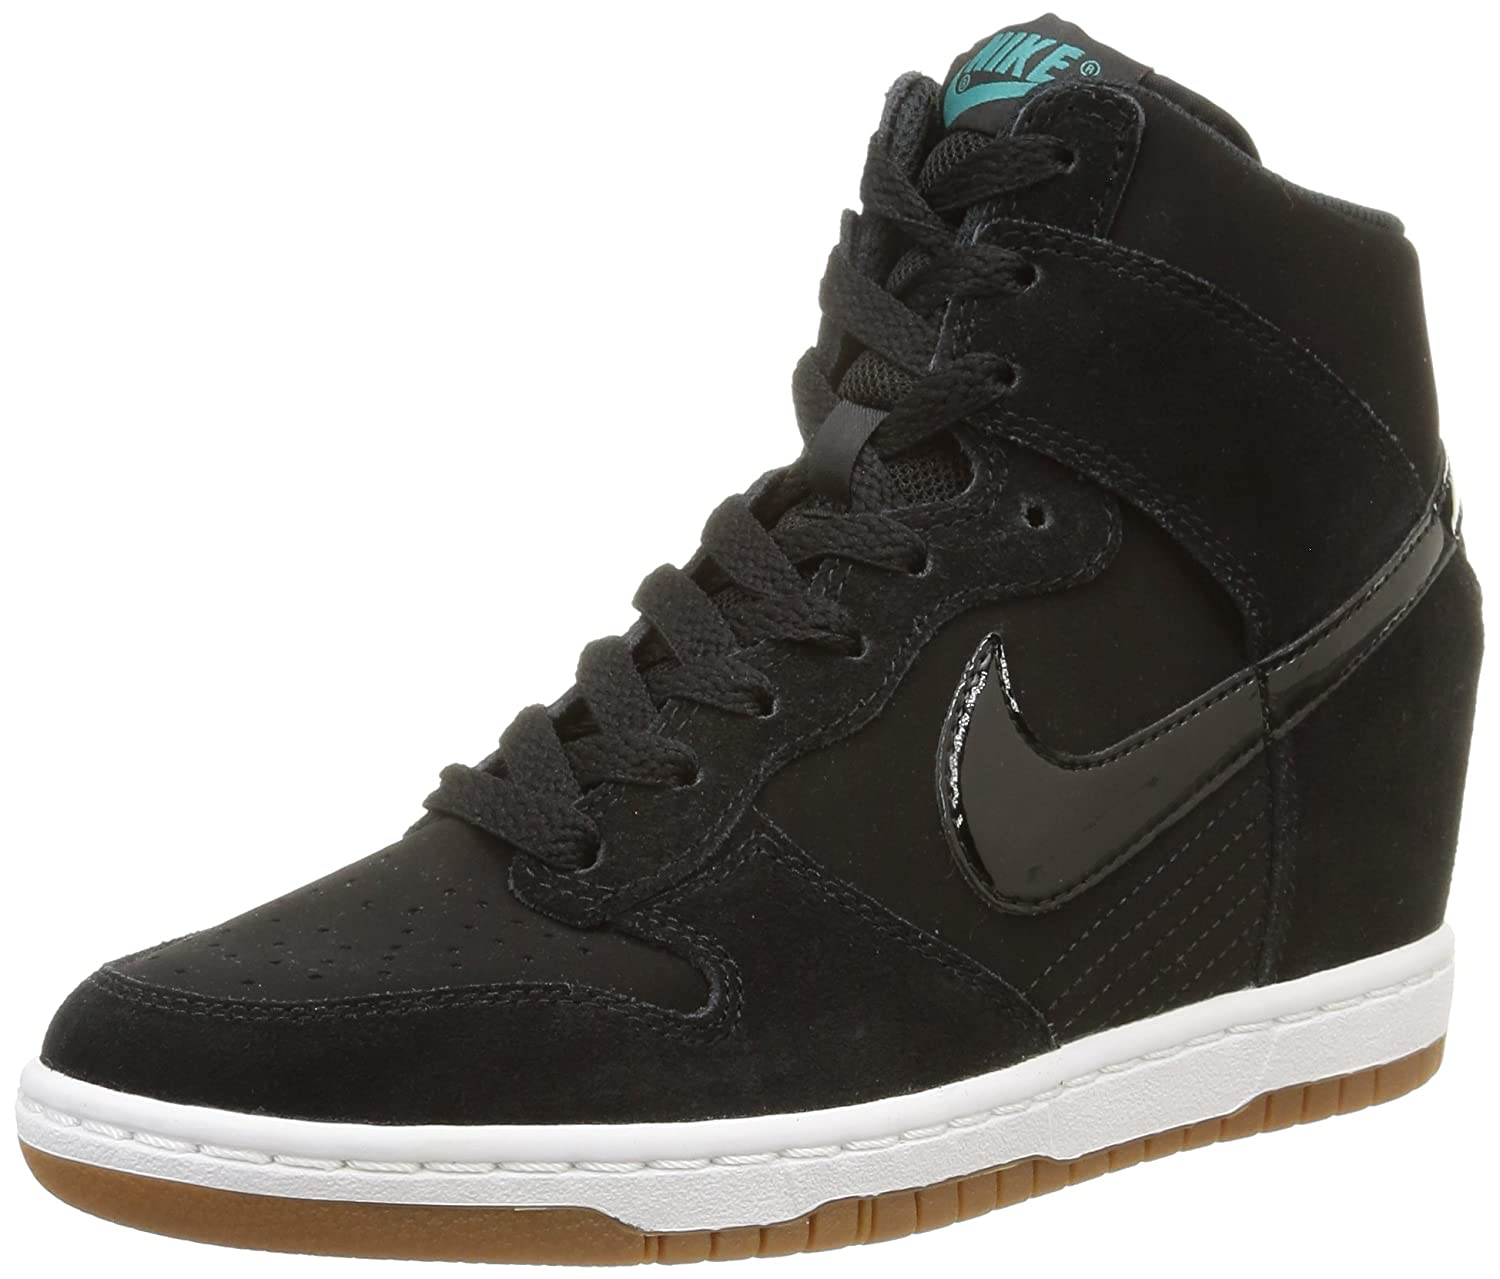 promo code 6f5e9 a9537 Nike WMNS Dunk Sky Hi Essential, Men s, Multi  Amazon.co.uk  Shoes   Bags